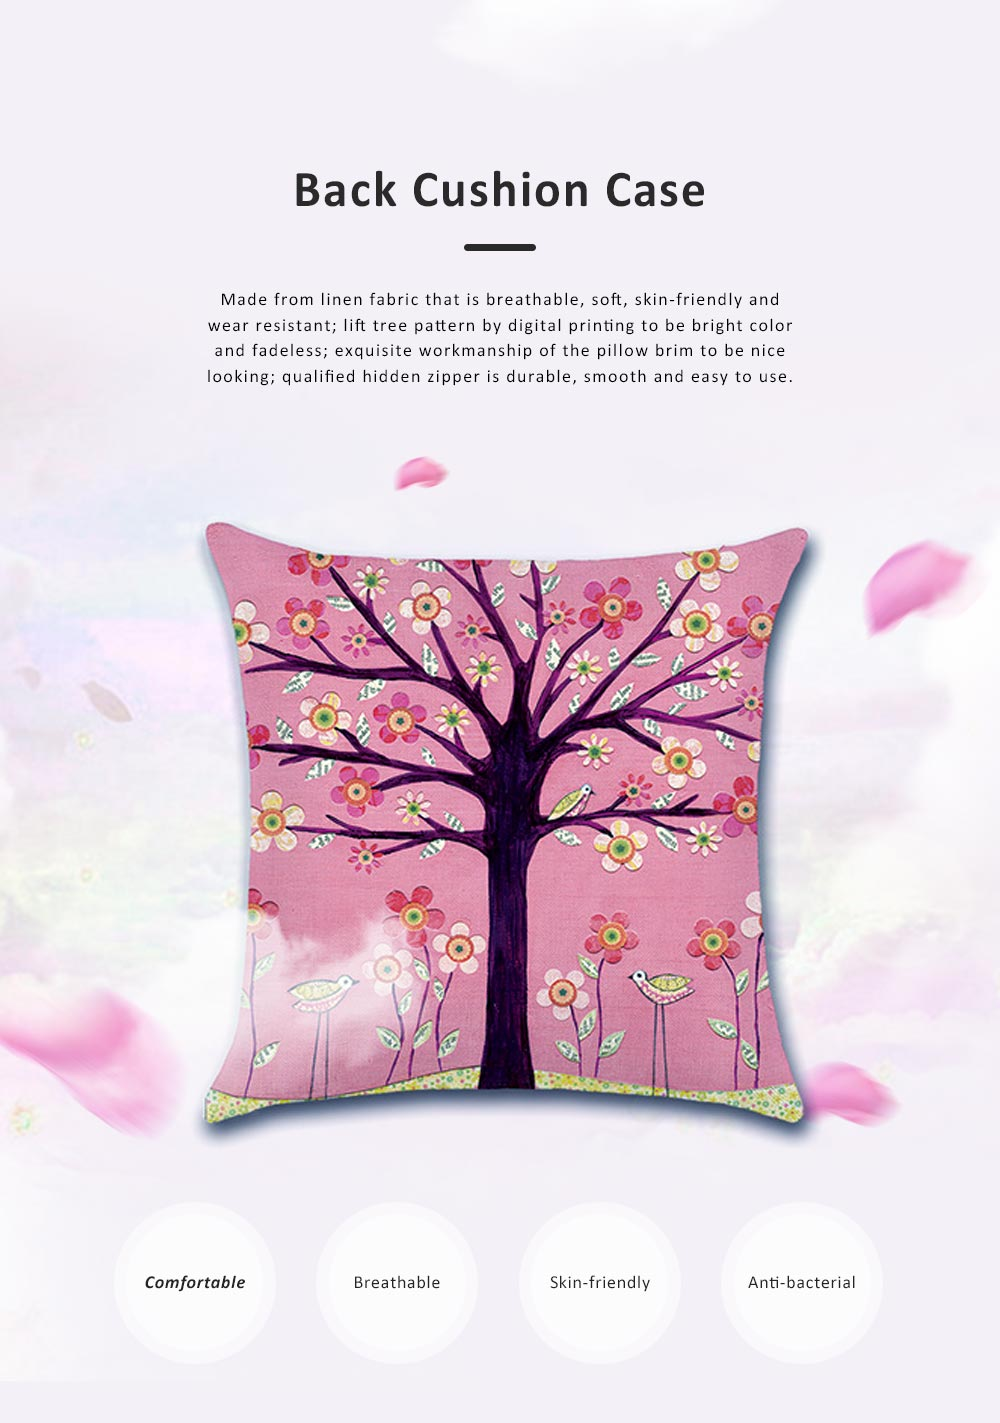 Abstract Tree Pattern Cushion Cover with Digital Printing, Skin-friendly Back Cushion Case for Vehicles, Sofa, Office Pillow Case 0